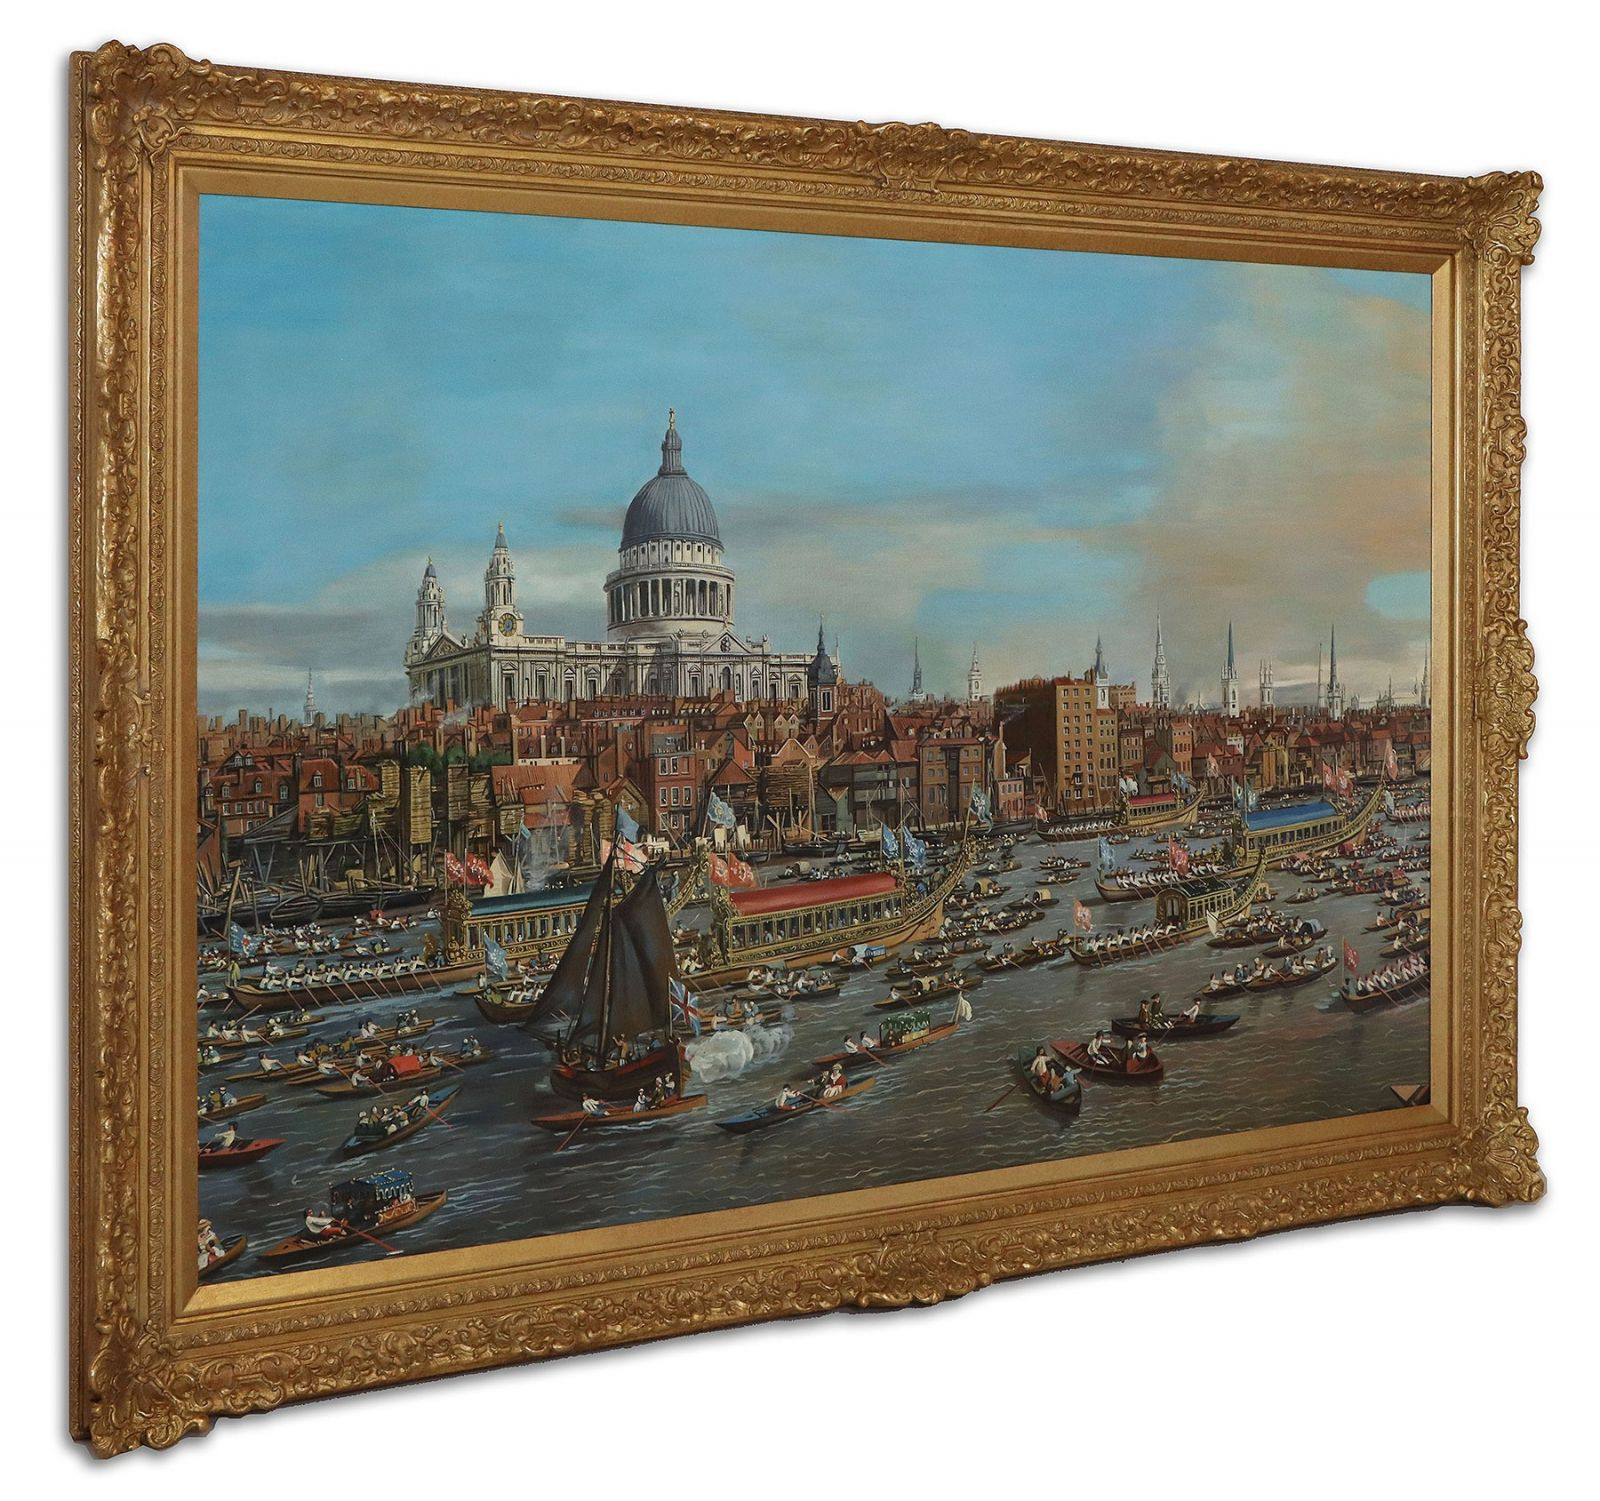 Oil Painting after The City of London from the River Thames with St. Paul's Cathedral by Canaletto